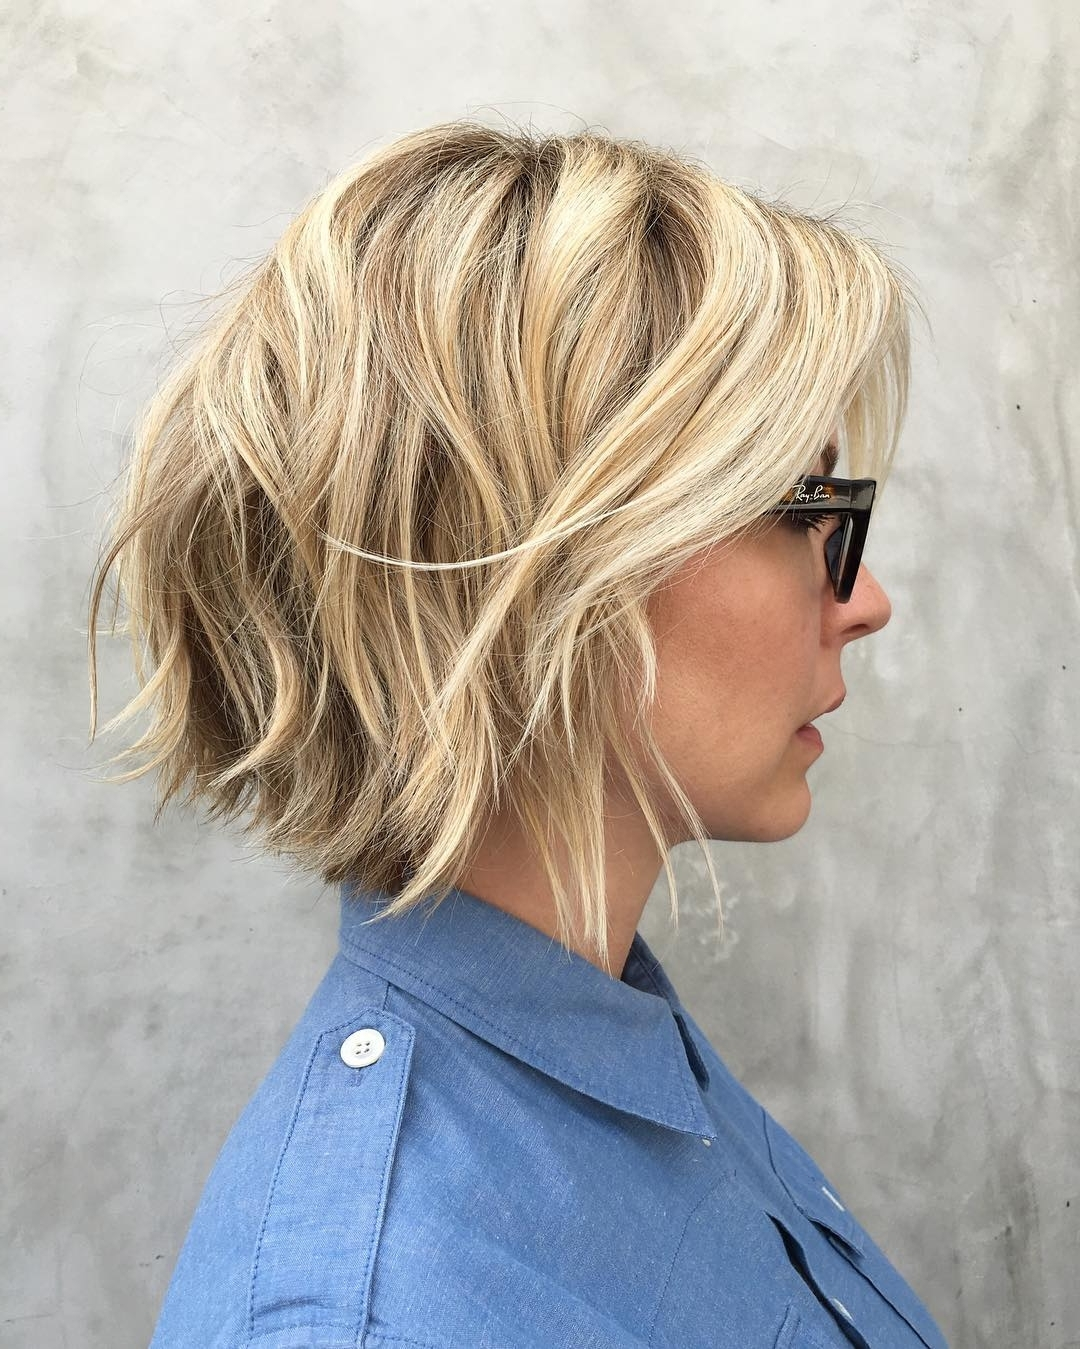 30 Trendiest Shaggy Bob Haircuts Of The Season With Well Known Shaggy Bob Hairstyles For Fine Hair (View 3 of 15)